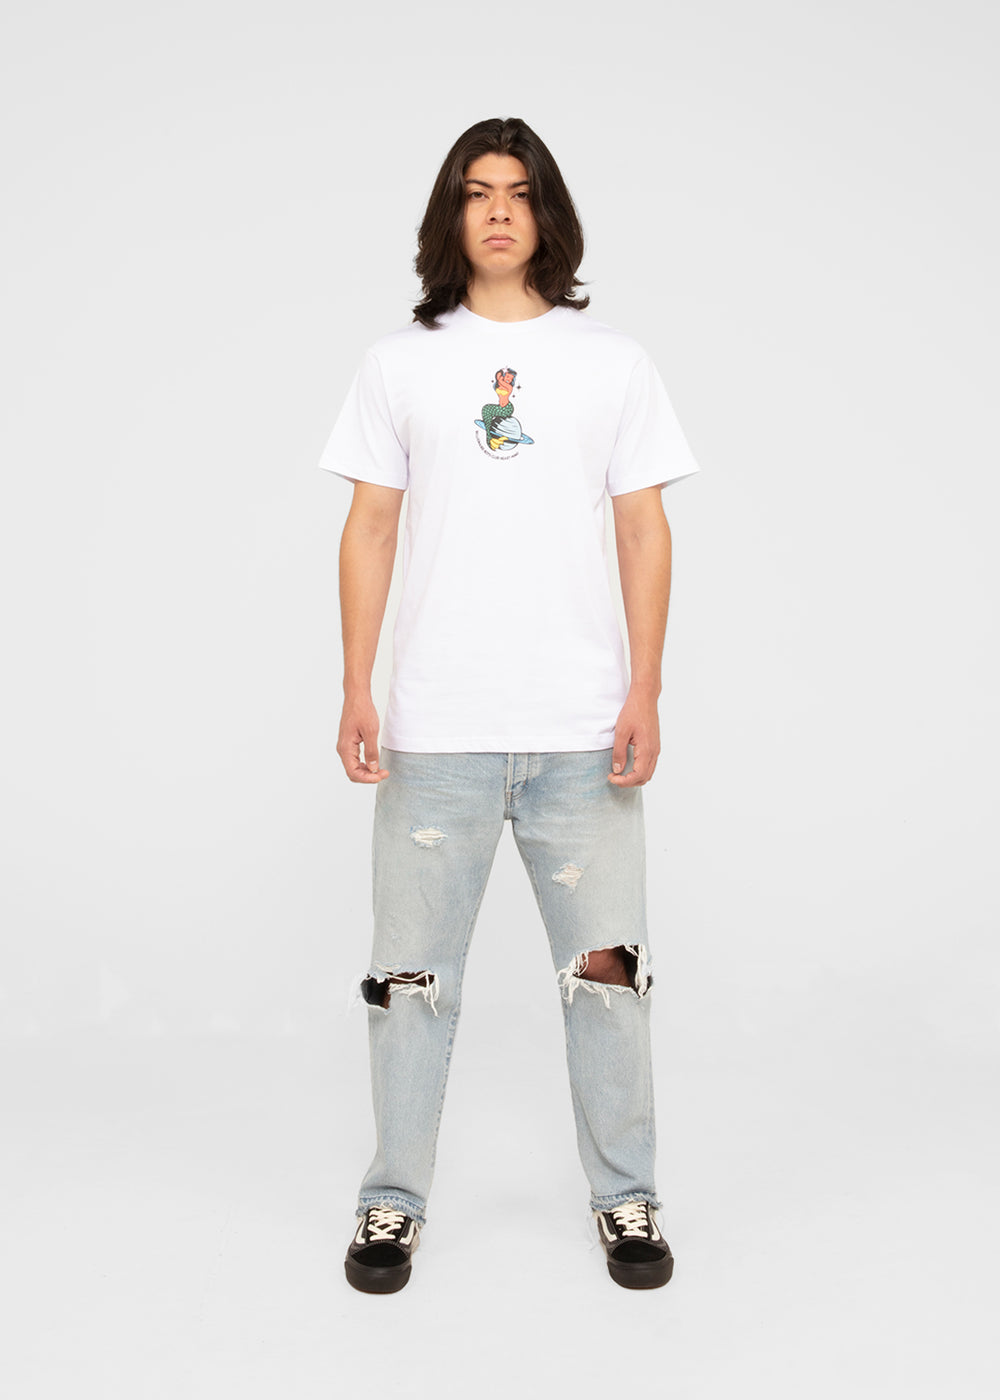 billionaire-boys-club-mermaid-ss-tee-891-7208-wht-wht-4